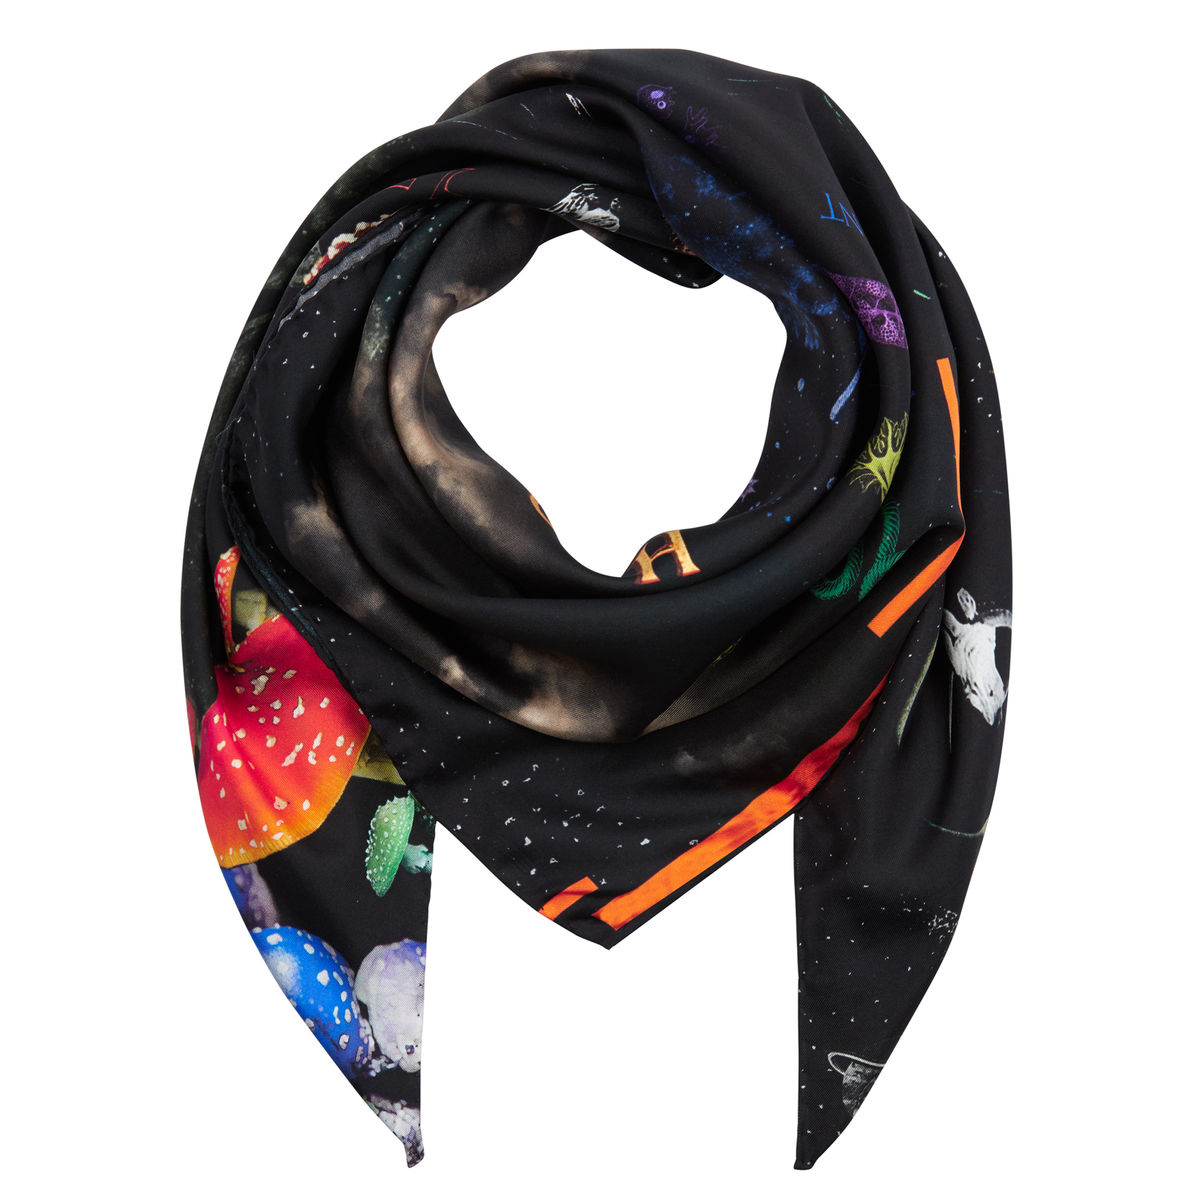 Medium scarf in Kosmos print - product images  of